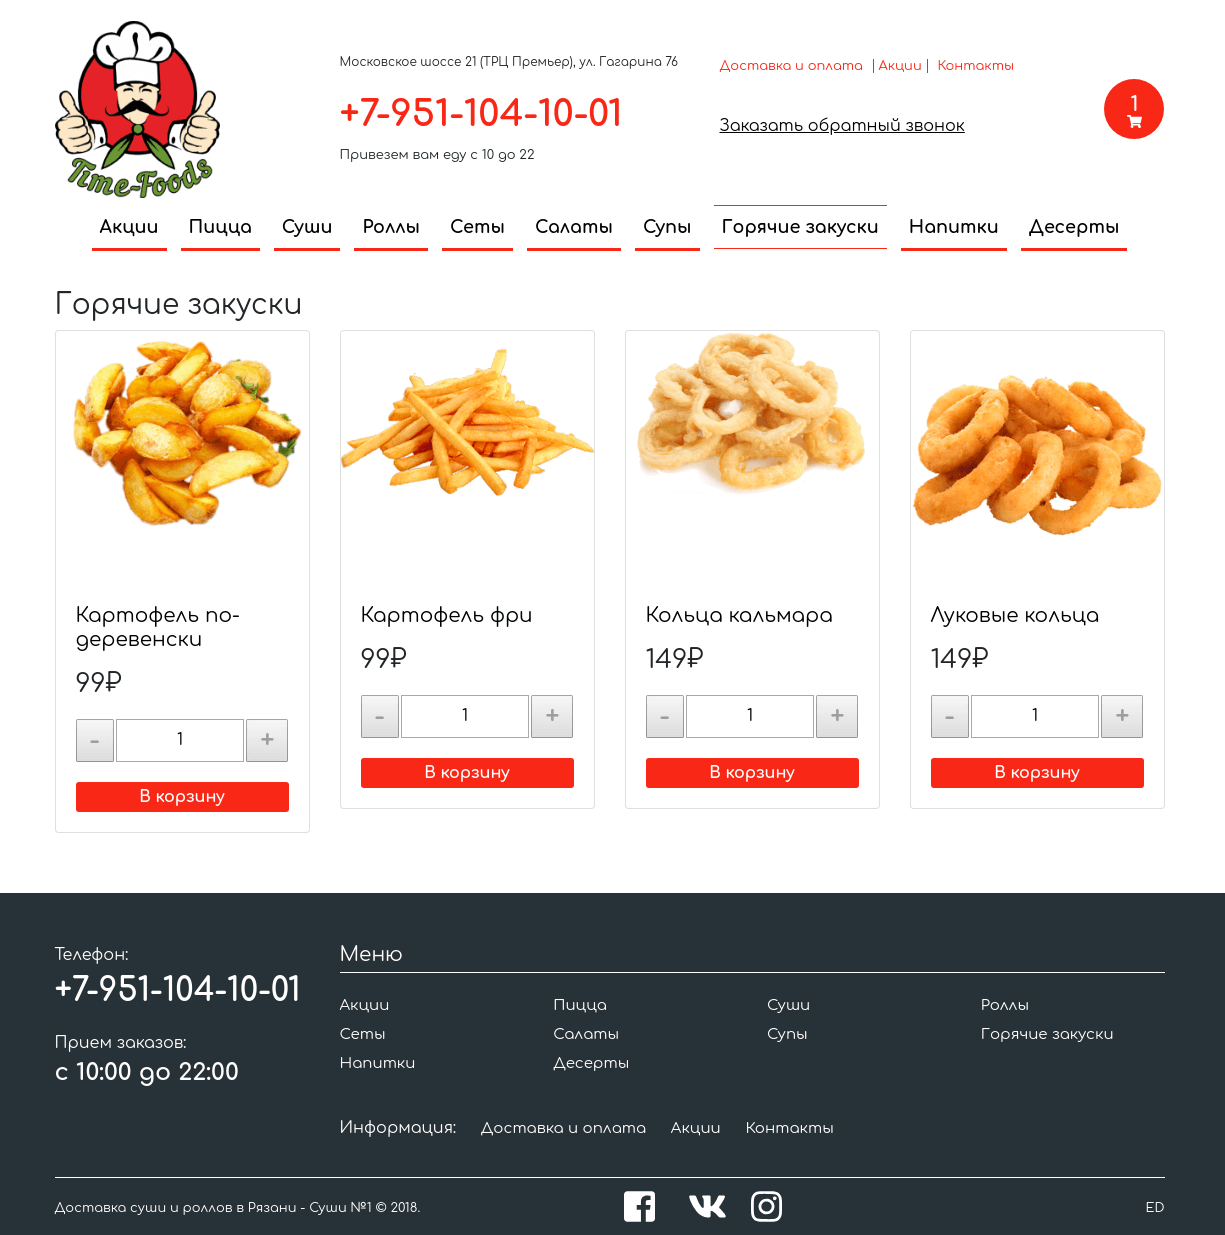 screenshot-time-foods.evgeniydoronin.com-2018.05.13-13-45-50 (1)